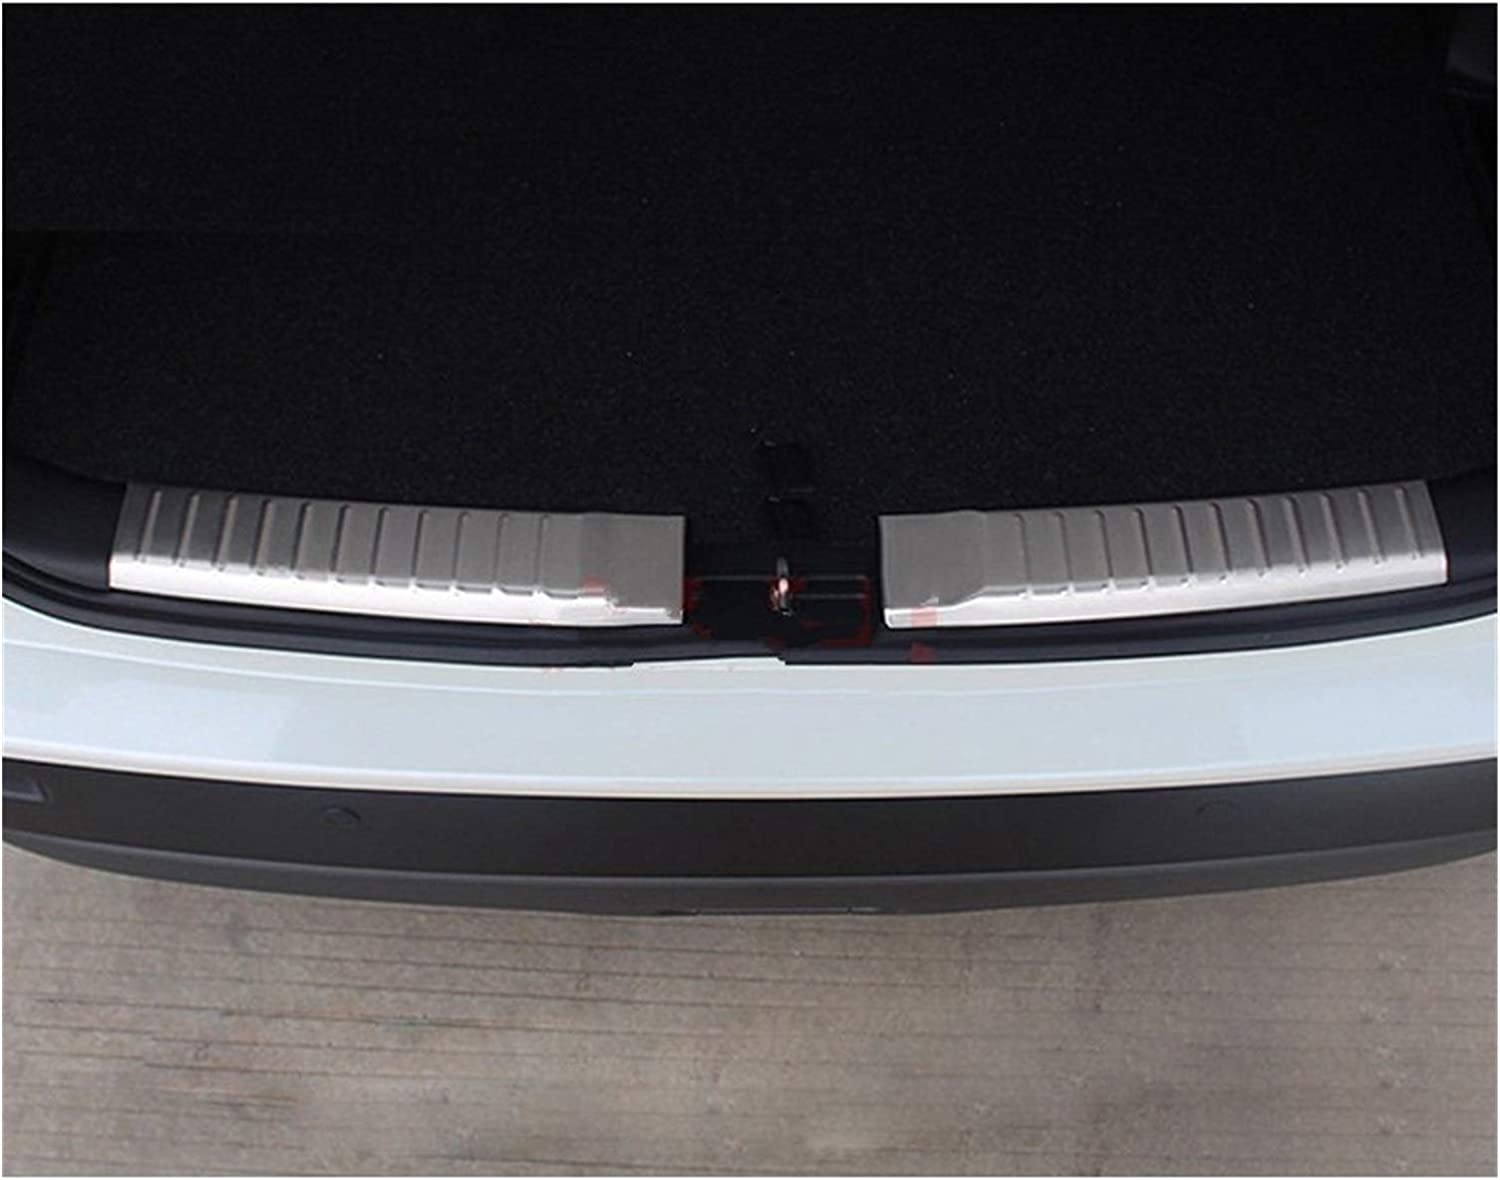 ZLLD Car Safety and trust quality assurance Bumpers Rearguards Stainless Rear Trun Bumper Steel